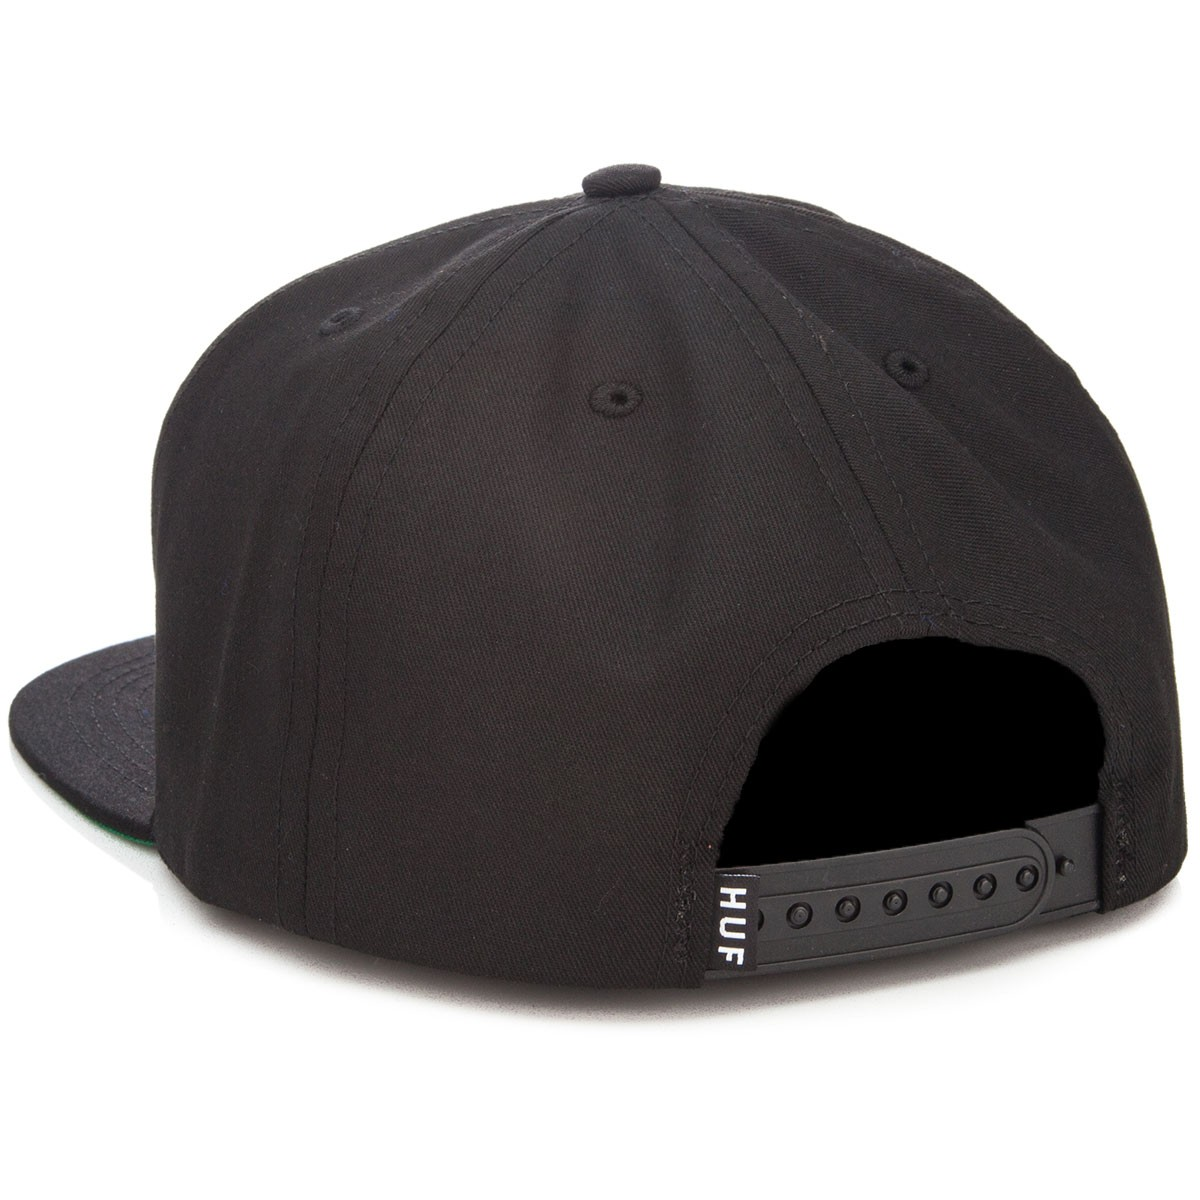 HUF X High Times Embroidered Snapback Hat - Black 35dd62813be7